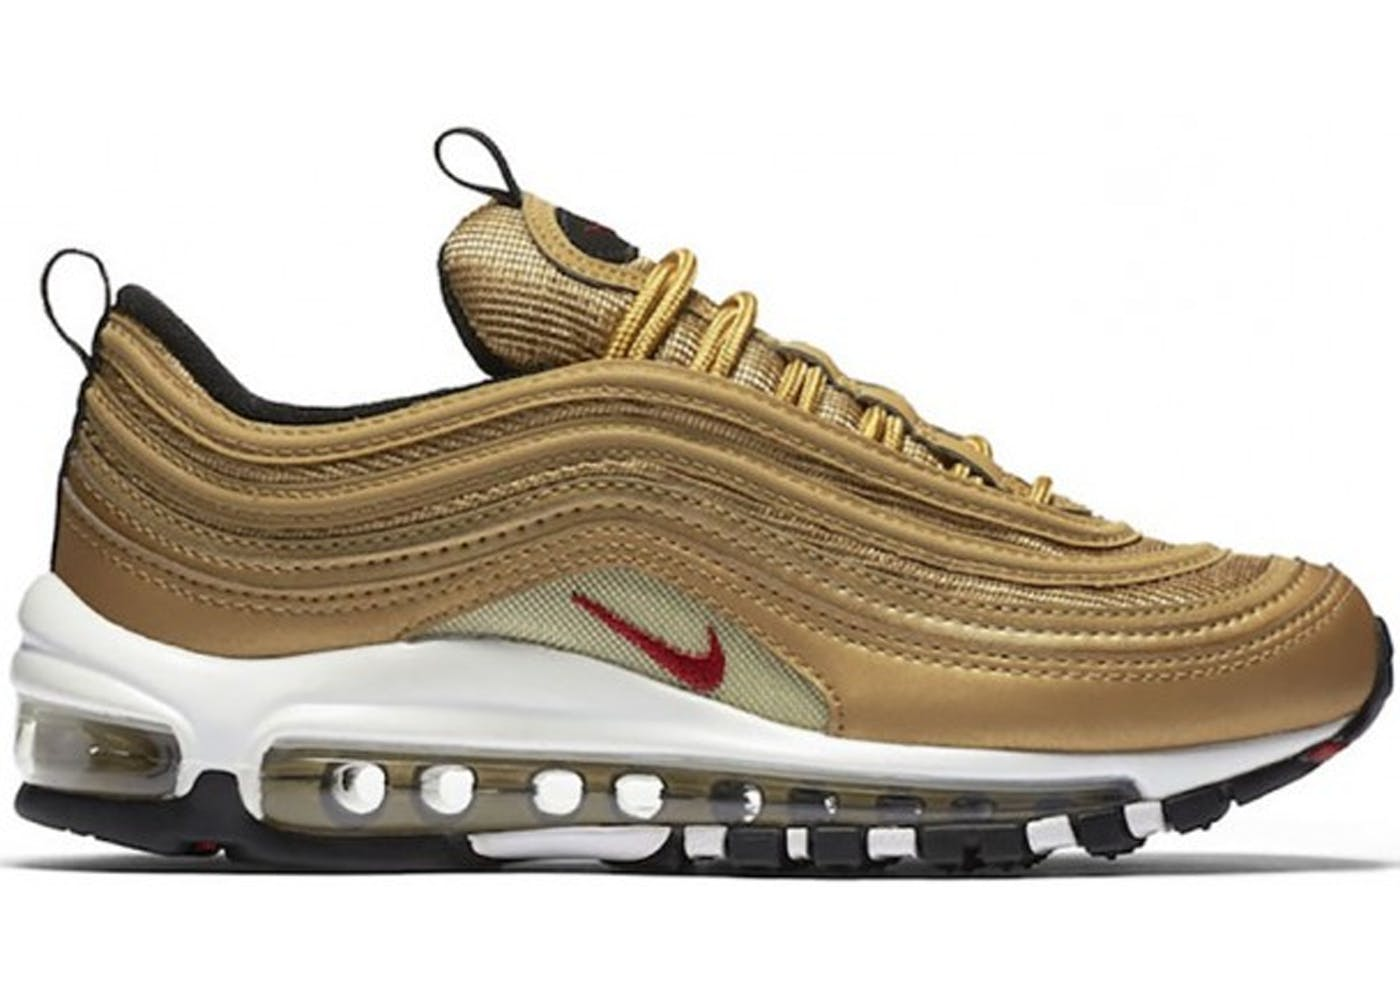 Air Max 97 Metallic Gold (2017)